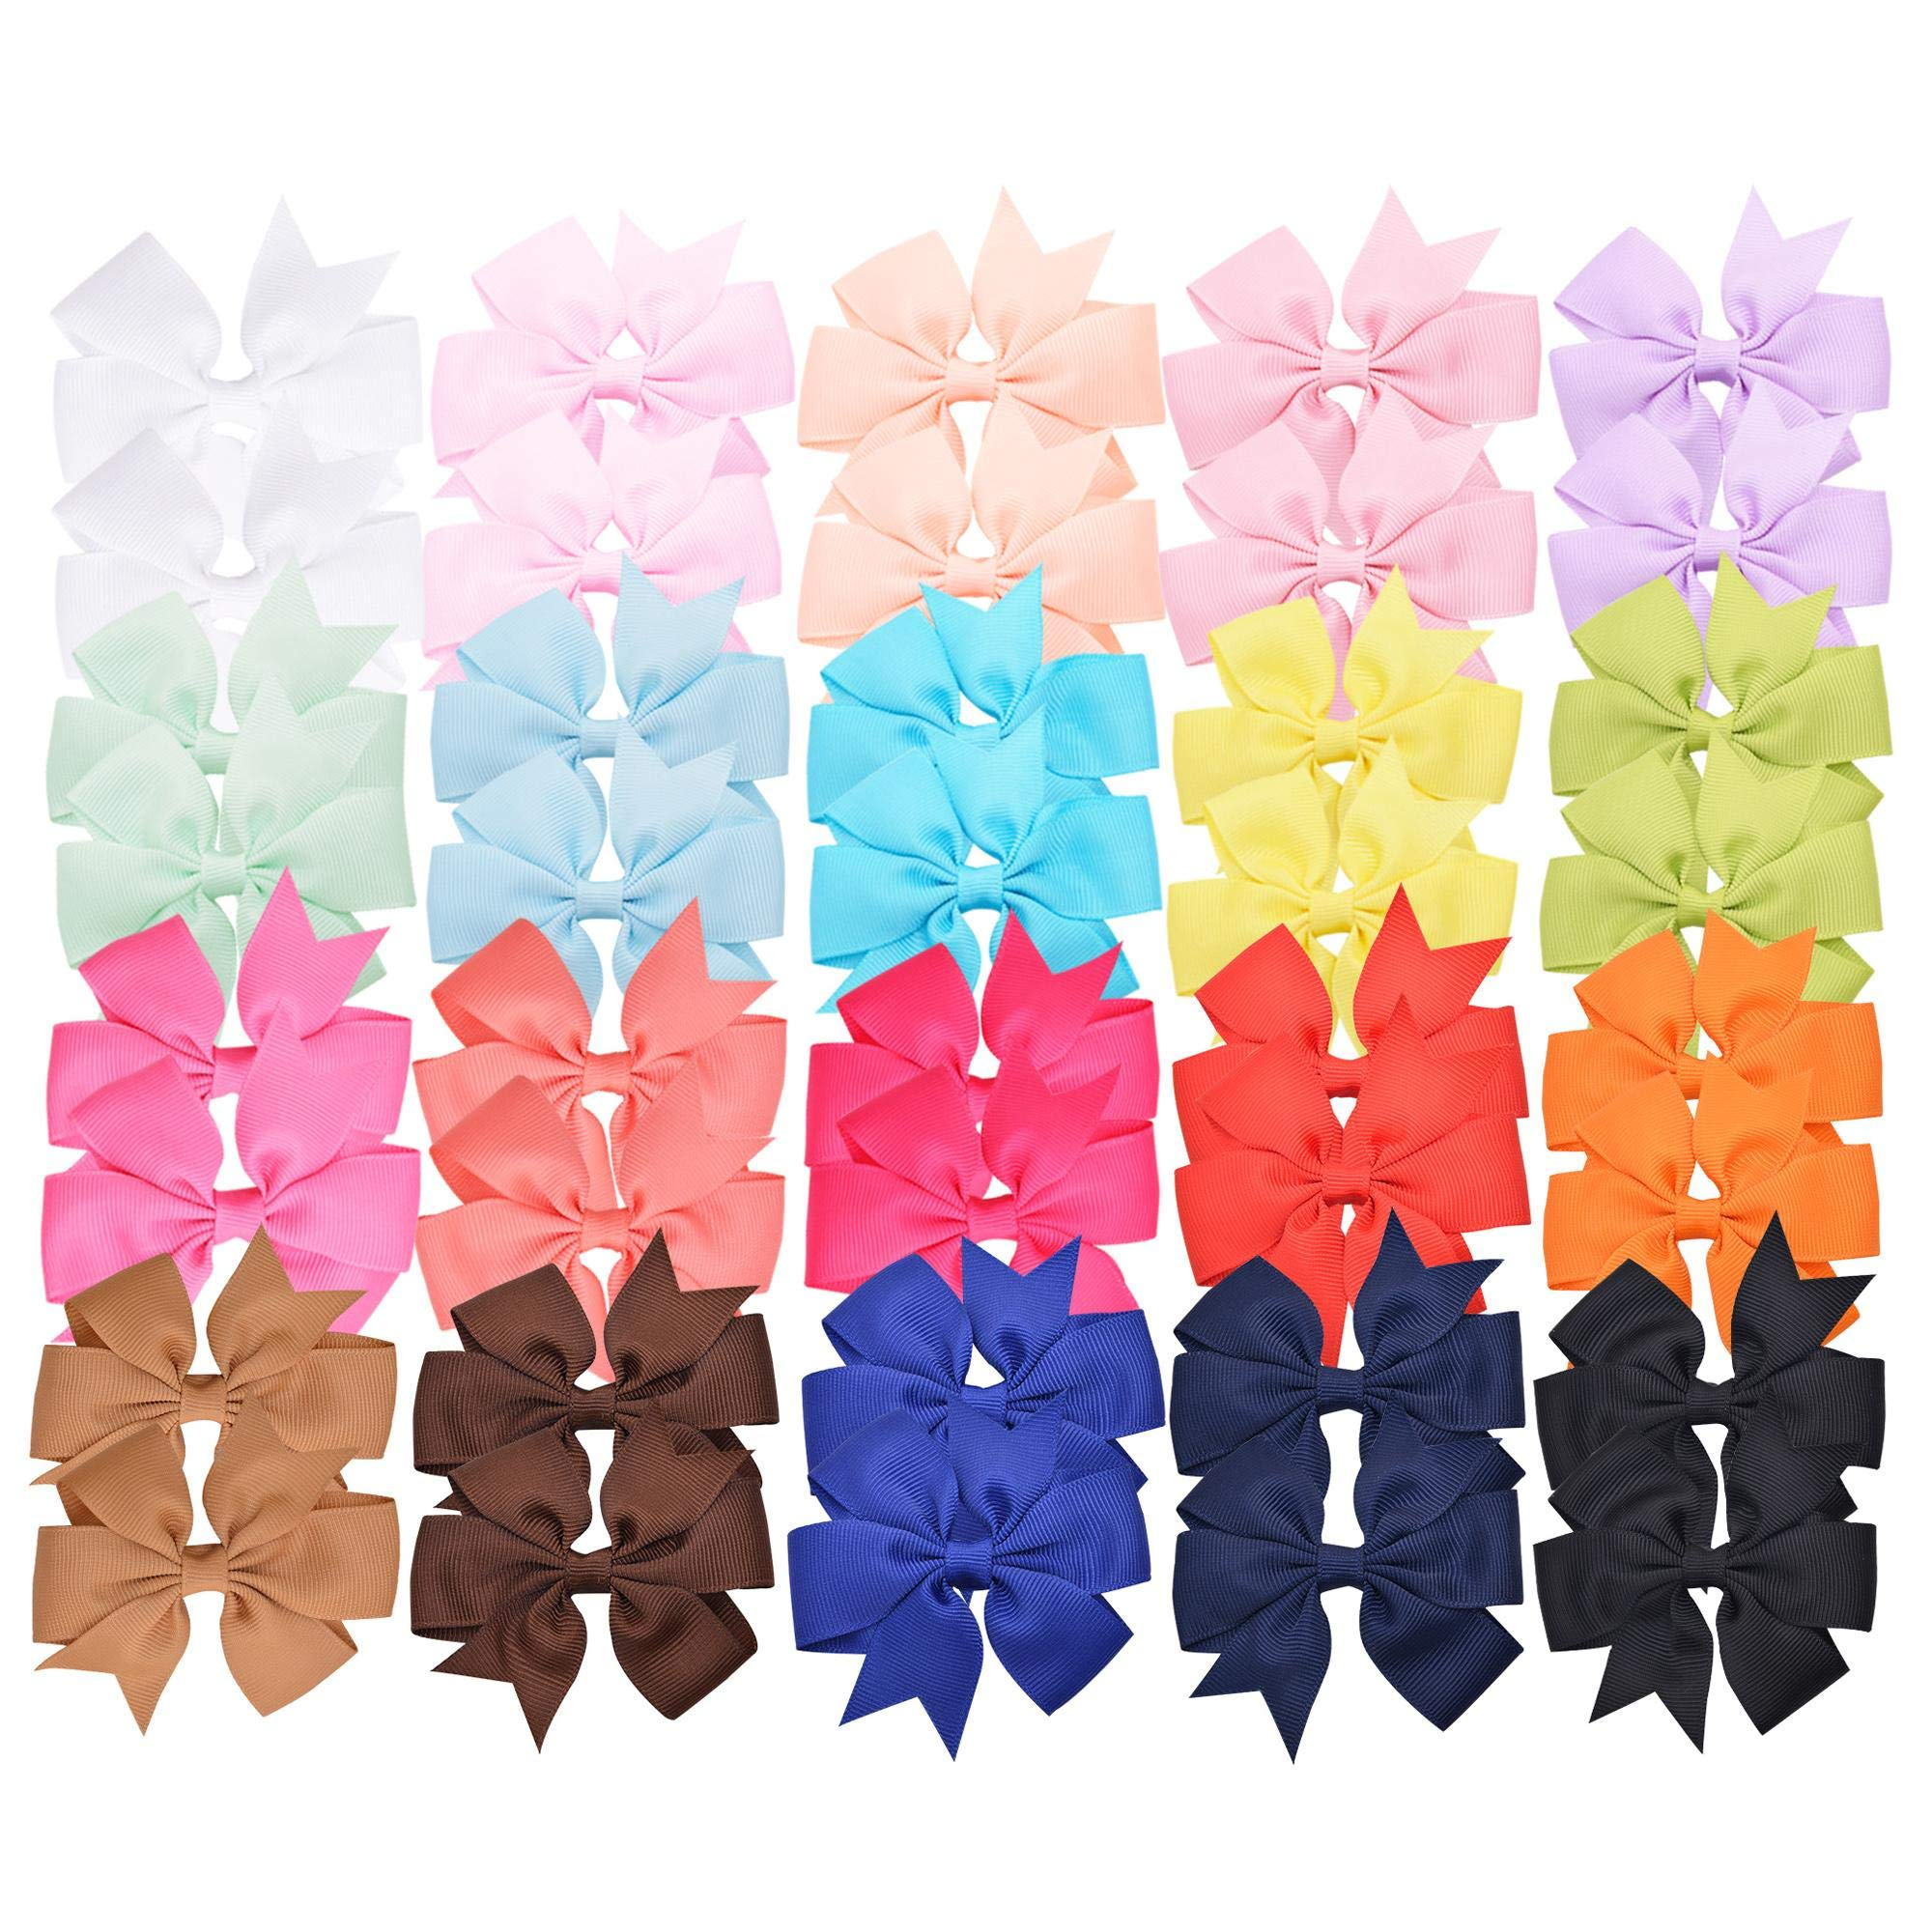 Prohouse 40 PCS 3'' Baby Girls Ribbon Hair Bow Clips Barrettes For Girl Teens Kids Babies Toddlers